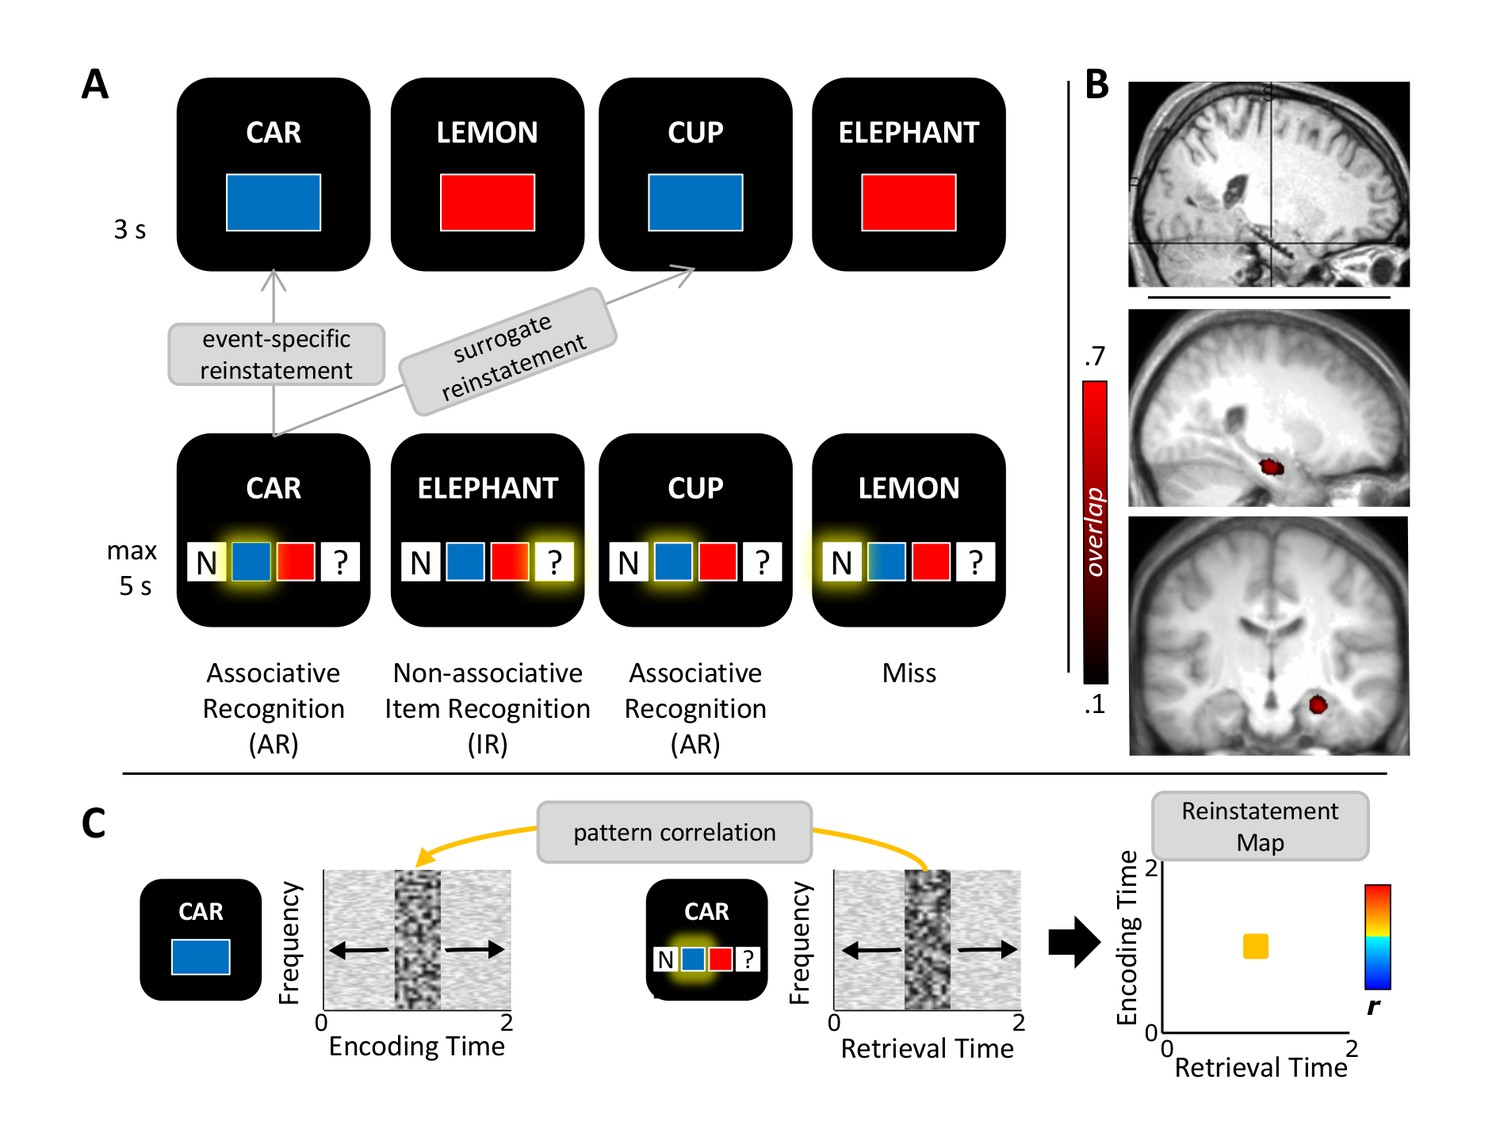 Figures and data in Hippocampal pattern completion is